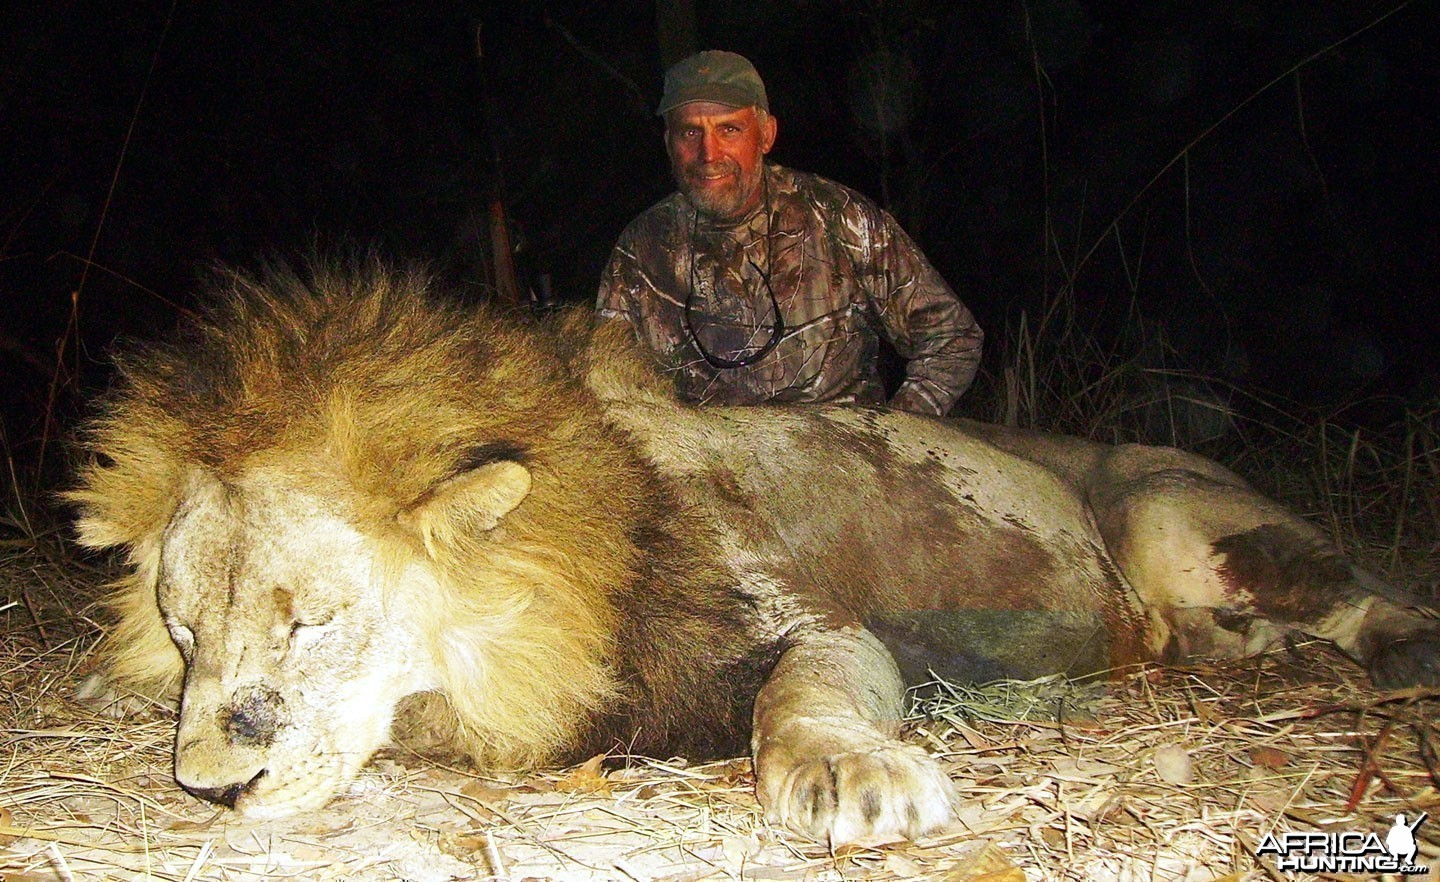 Big Lion hunted in Zambia with Prohunt Zambia